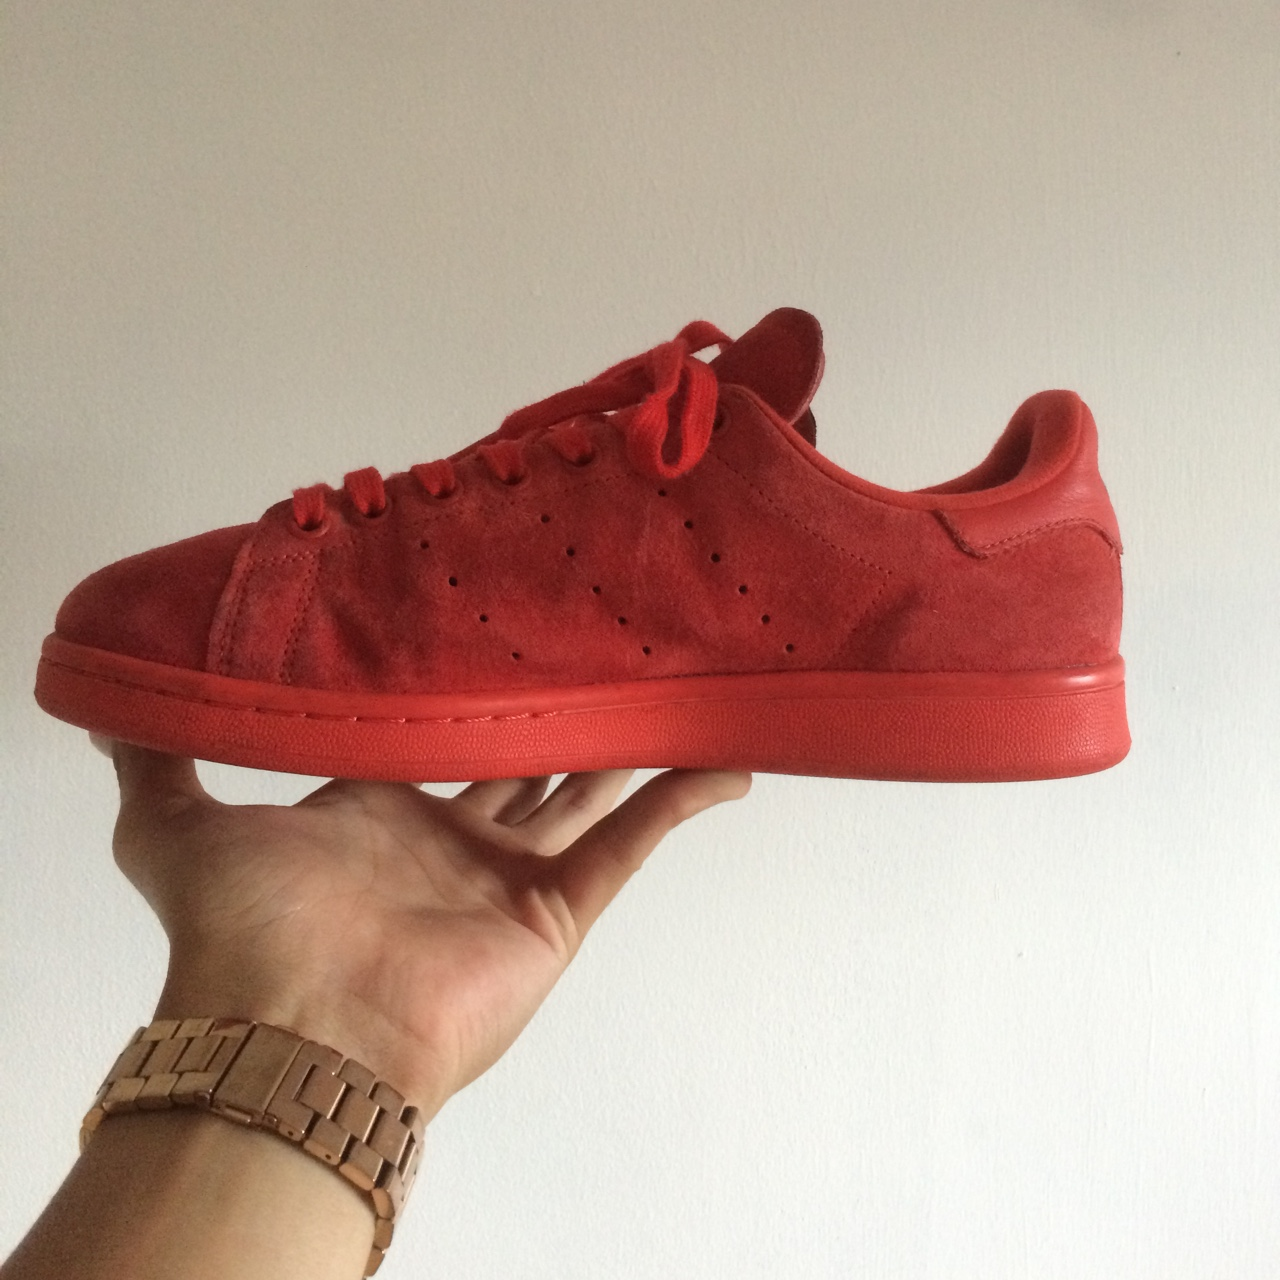 Adidas Stan Smith Red Suede Size 7 shoes. 9 10 condition a - Depop b3a9f97dc04e